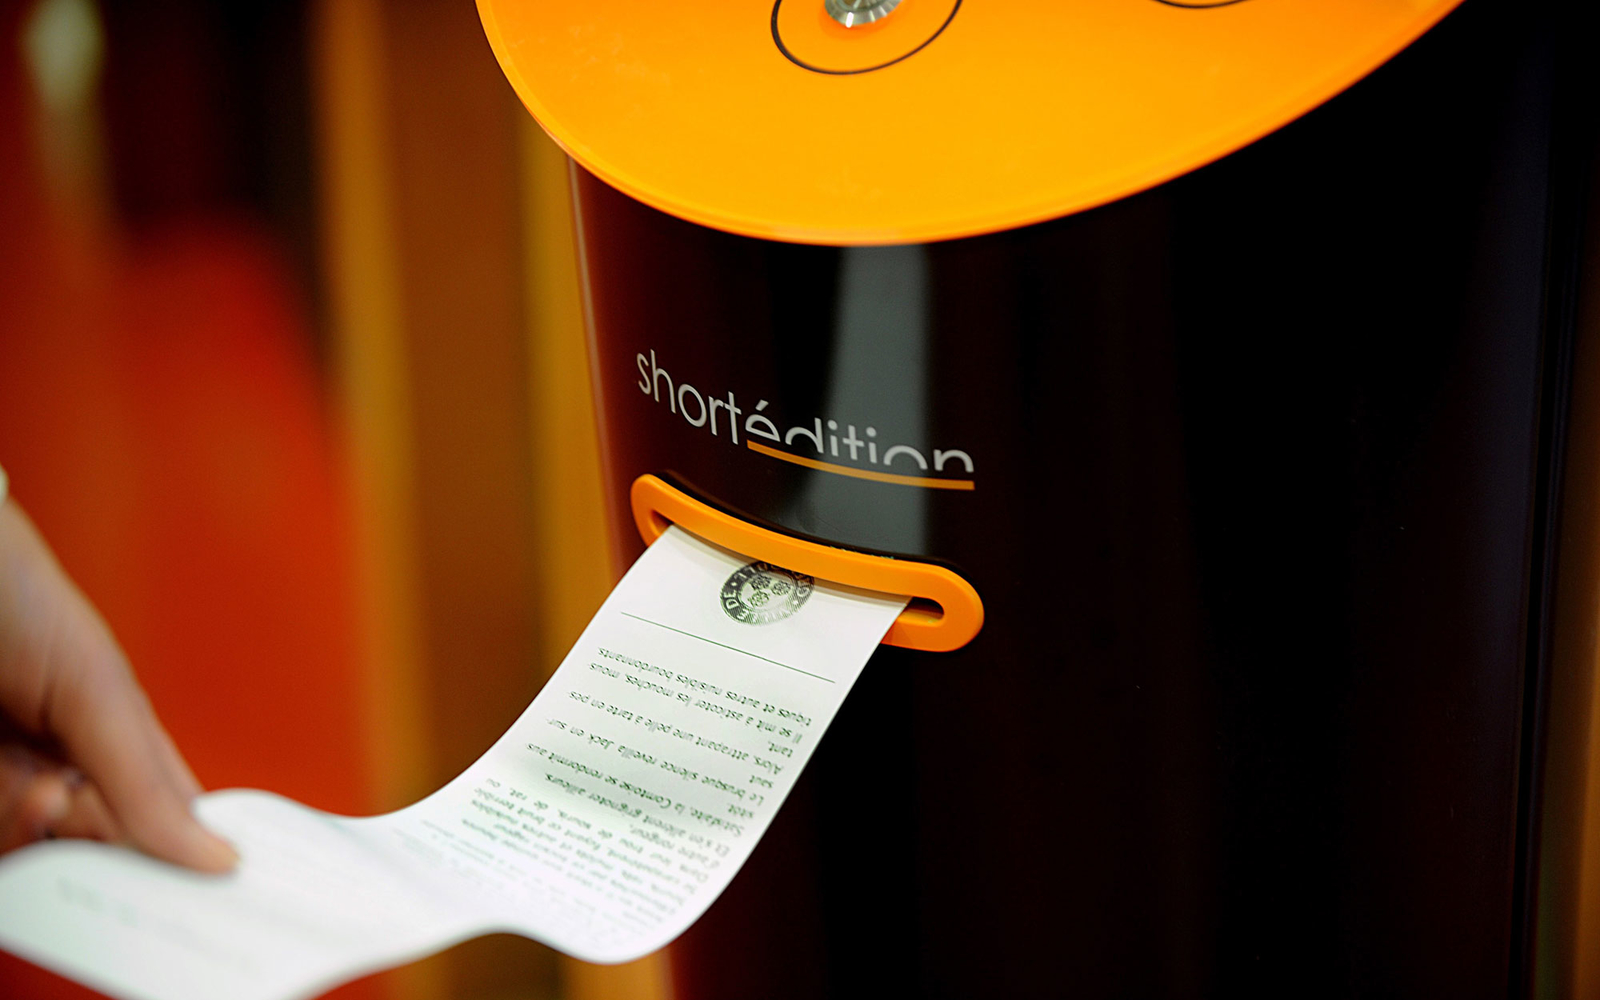 Grenoble Has Vending Machines That Dispense Short Stories 5